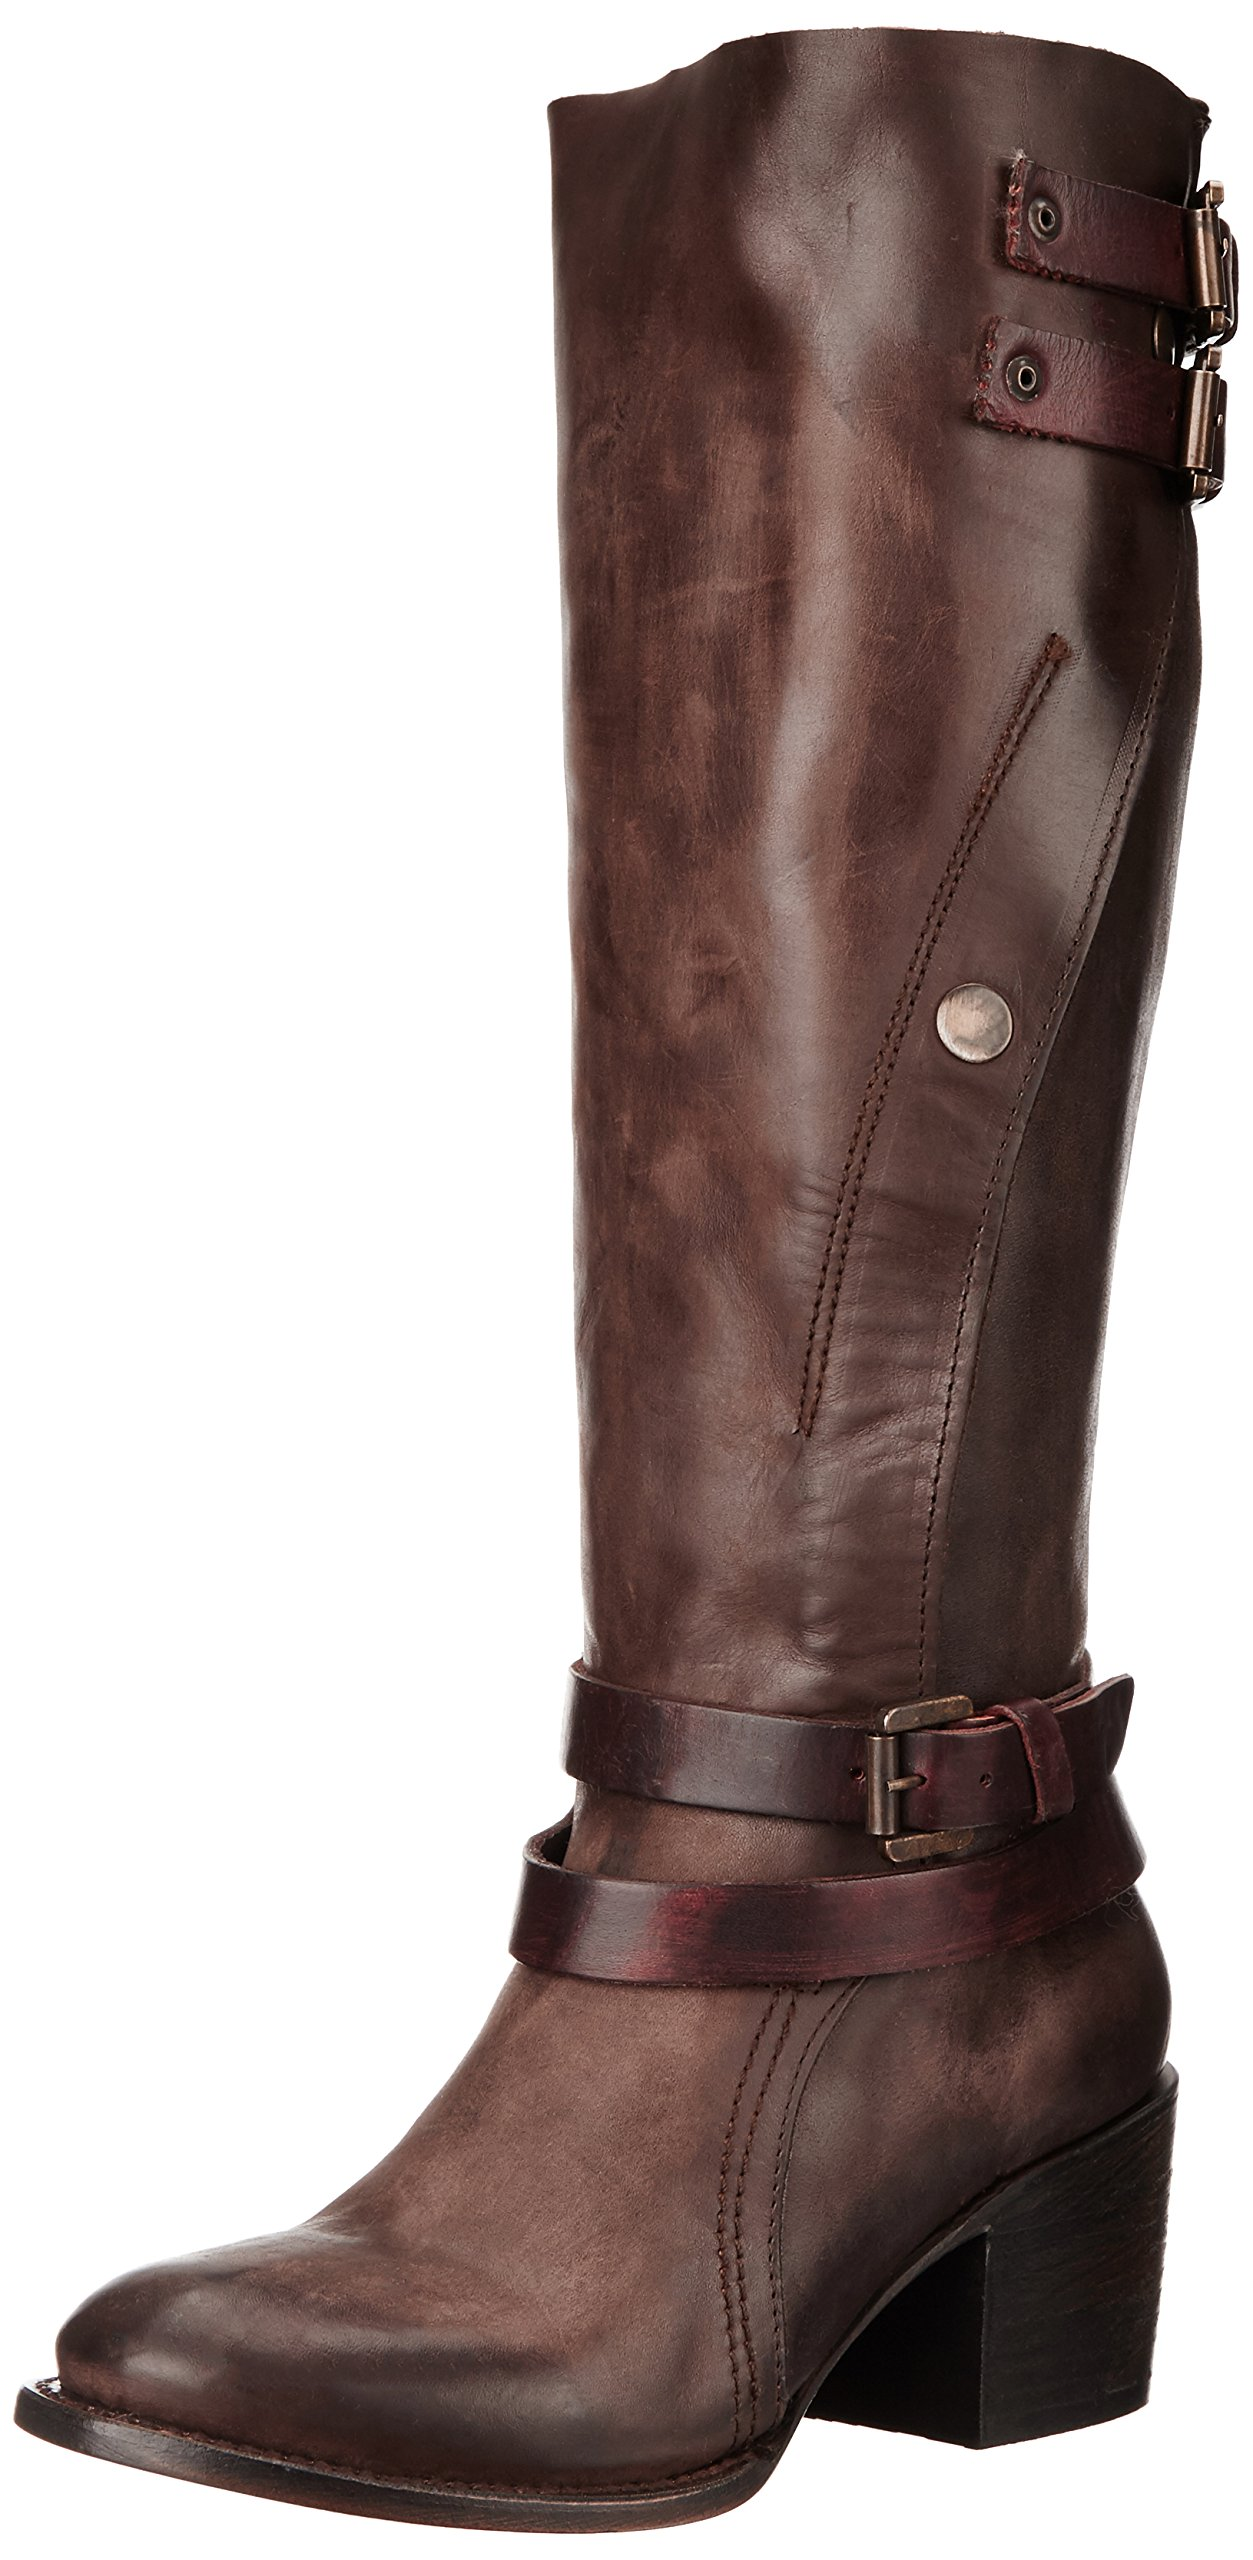 Freebird Women's CLIVE Boot, Brown Multi, 7 M US